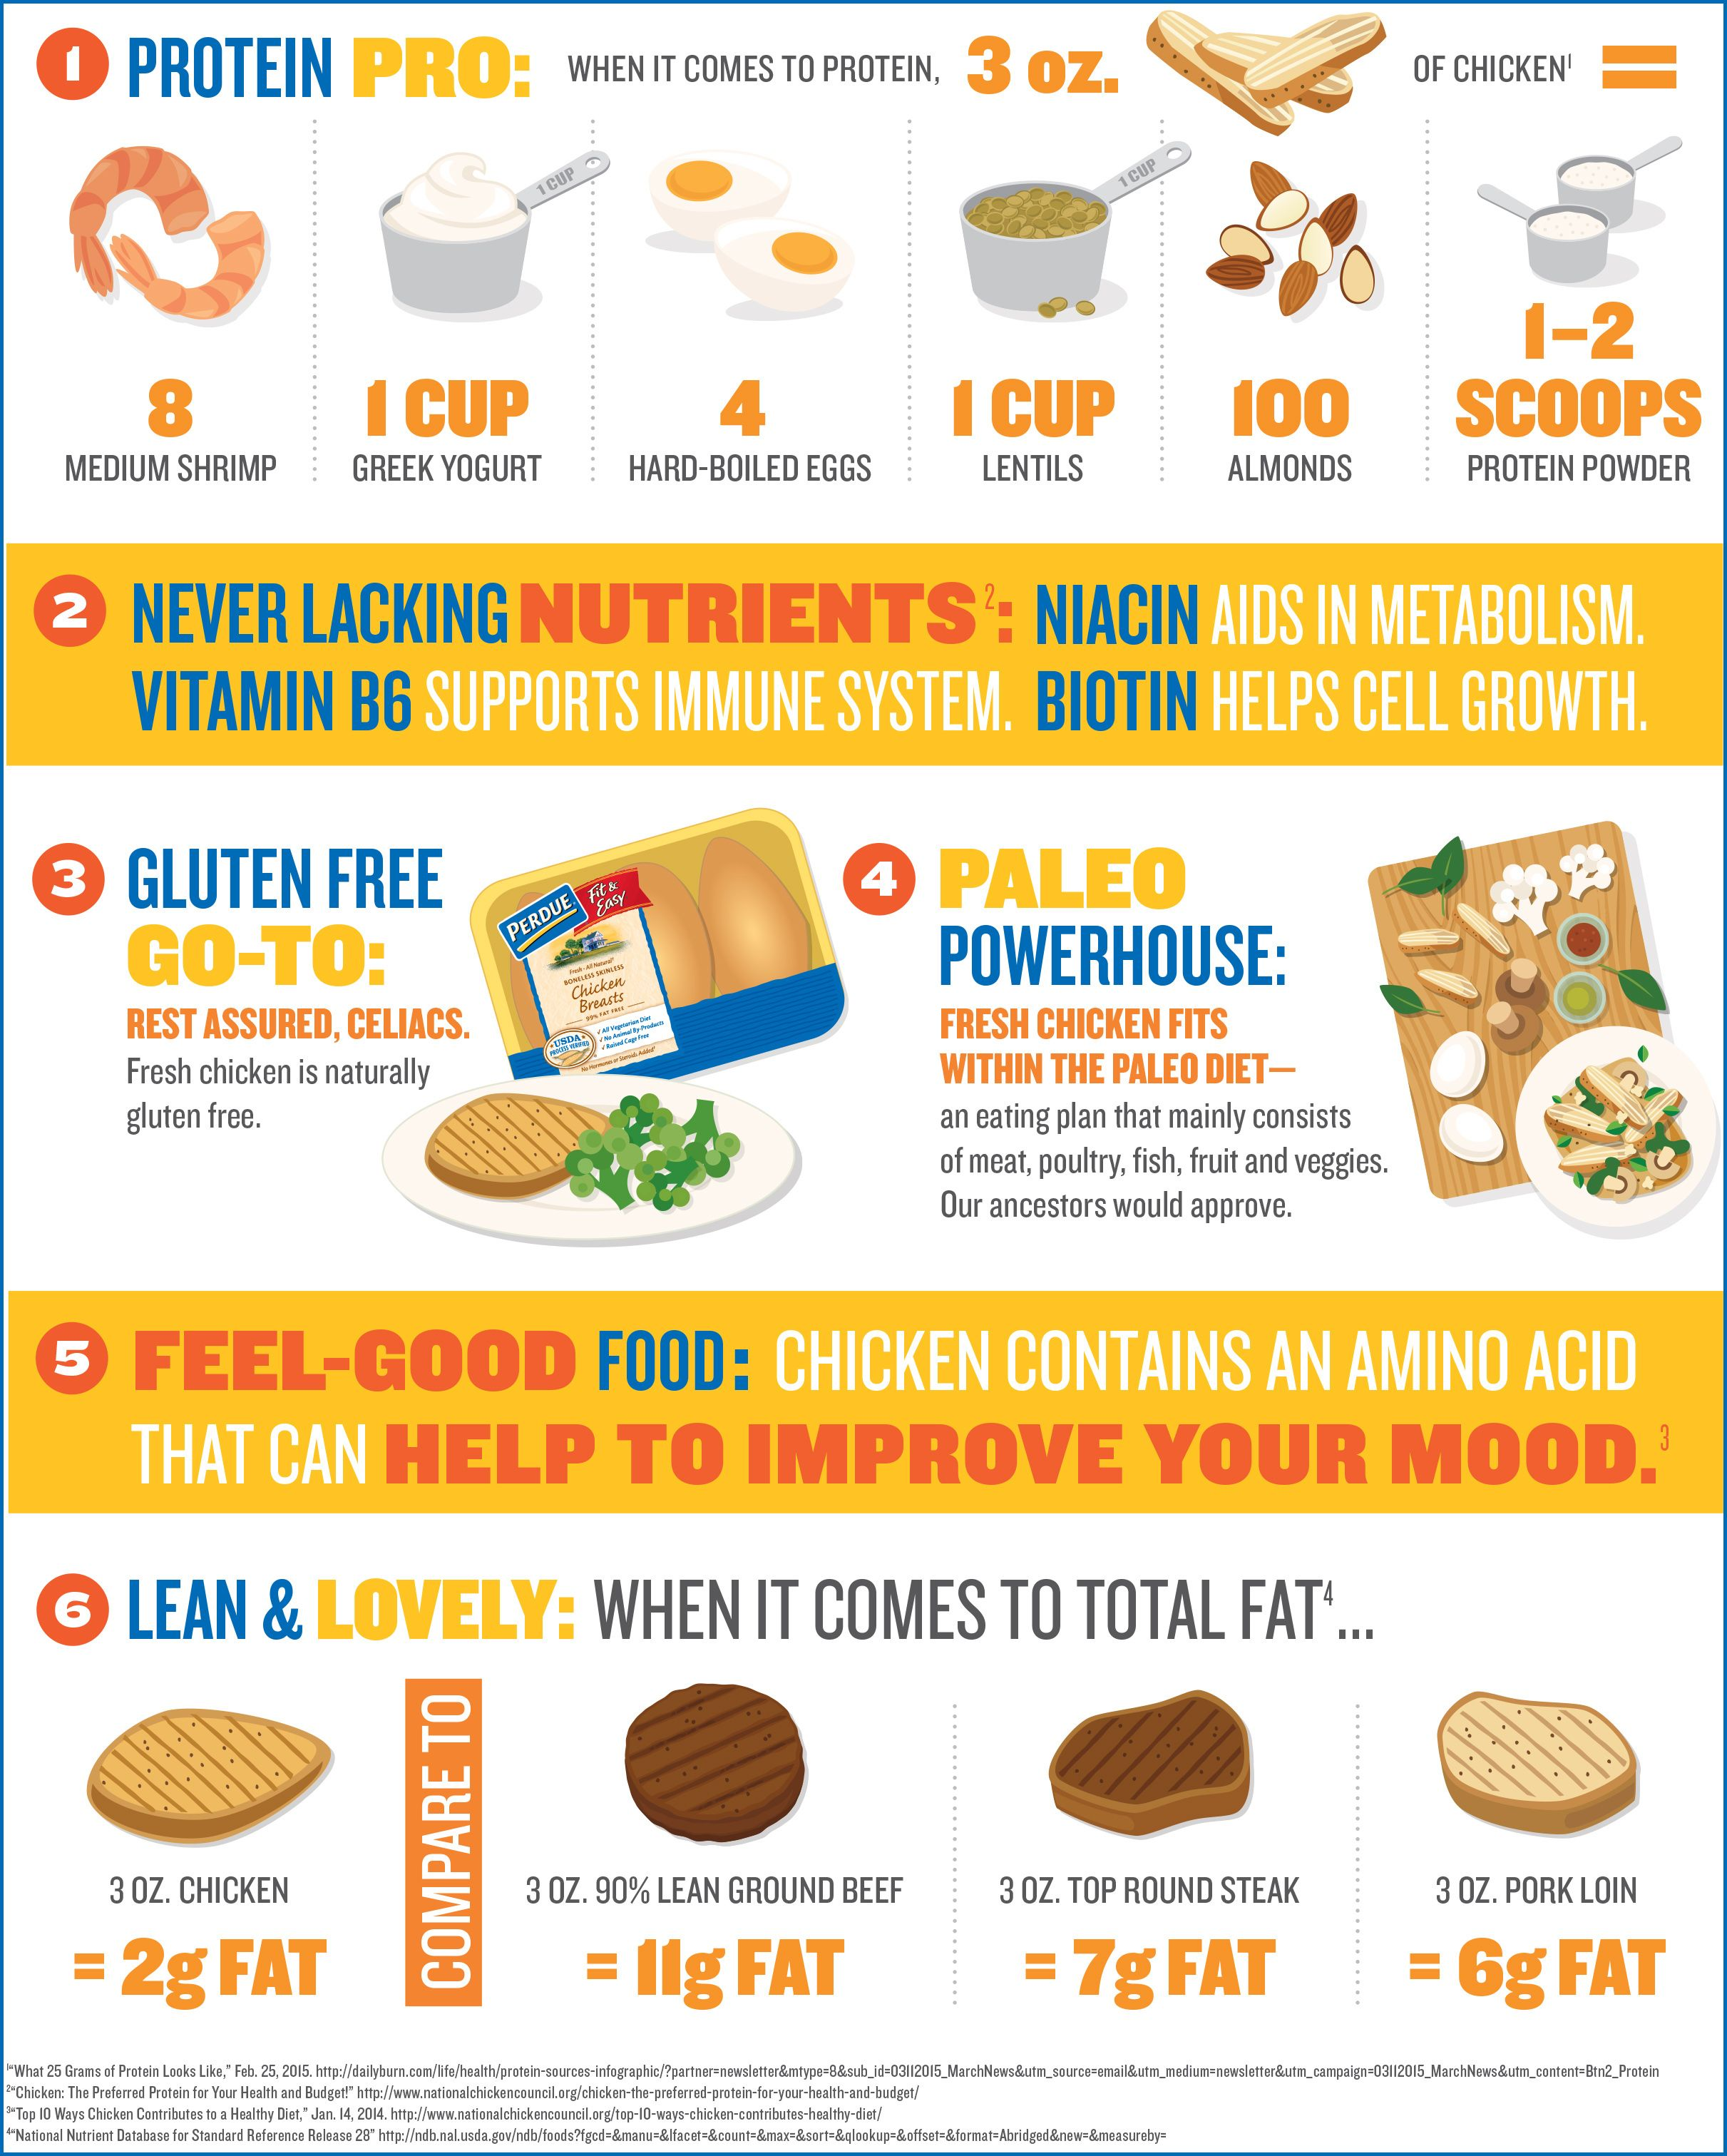 Learn More About Why Chicken Is A Great Idea With This Clever Infographic From Perdue